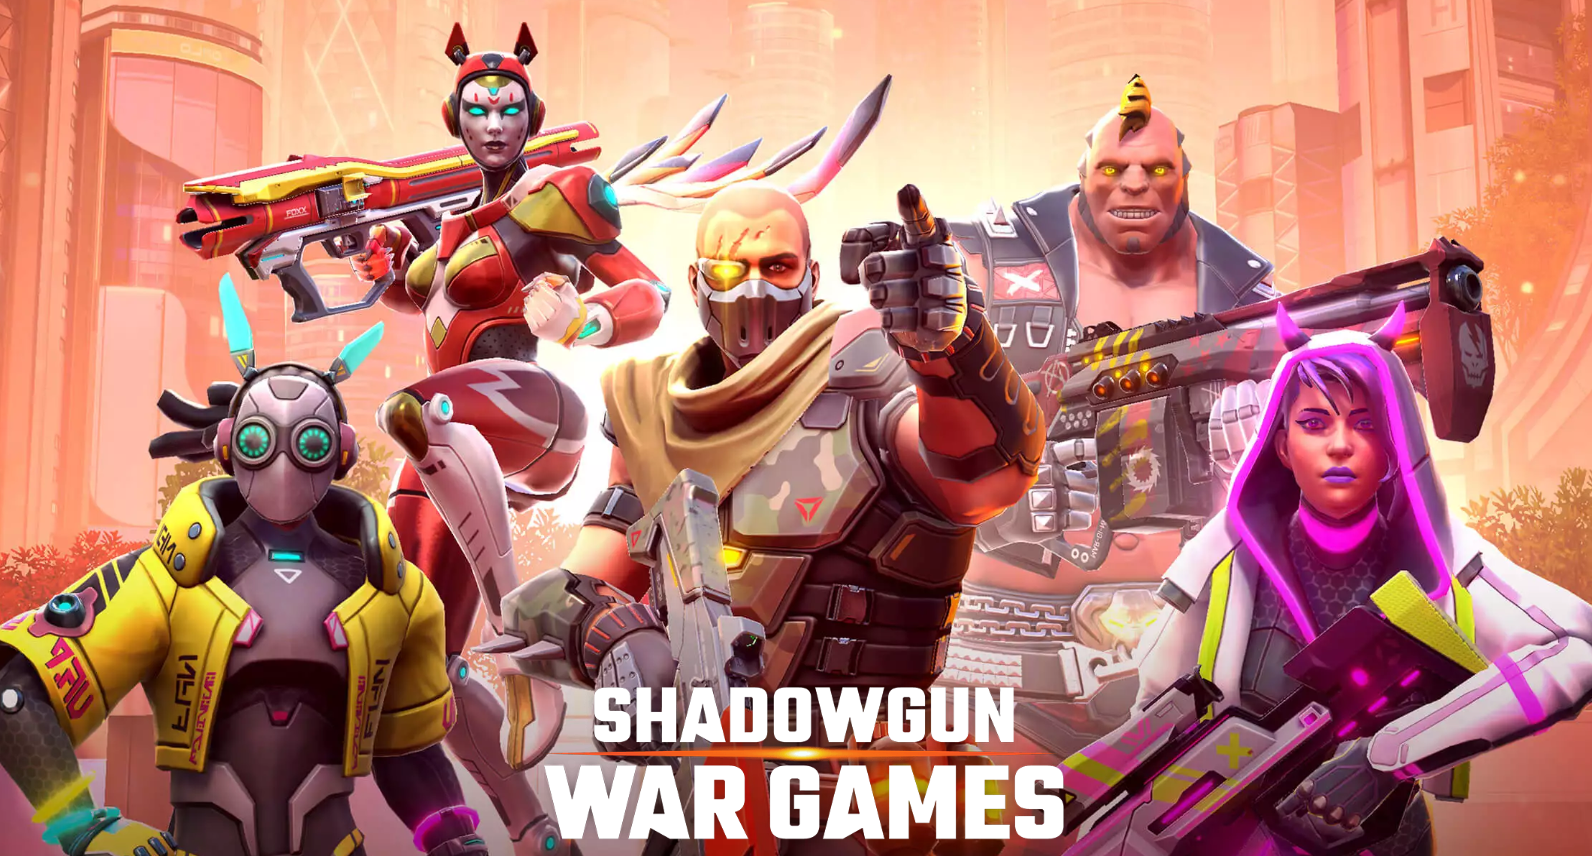 Shadowgun War Games: First Impressions - The Mobile Overwatch? 3